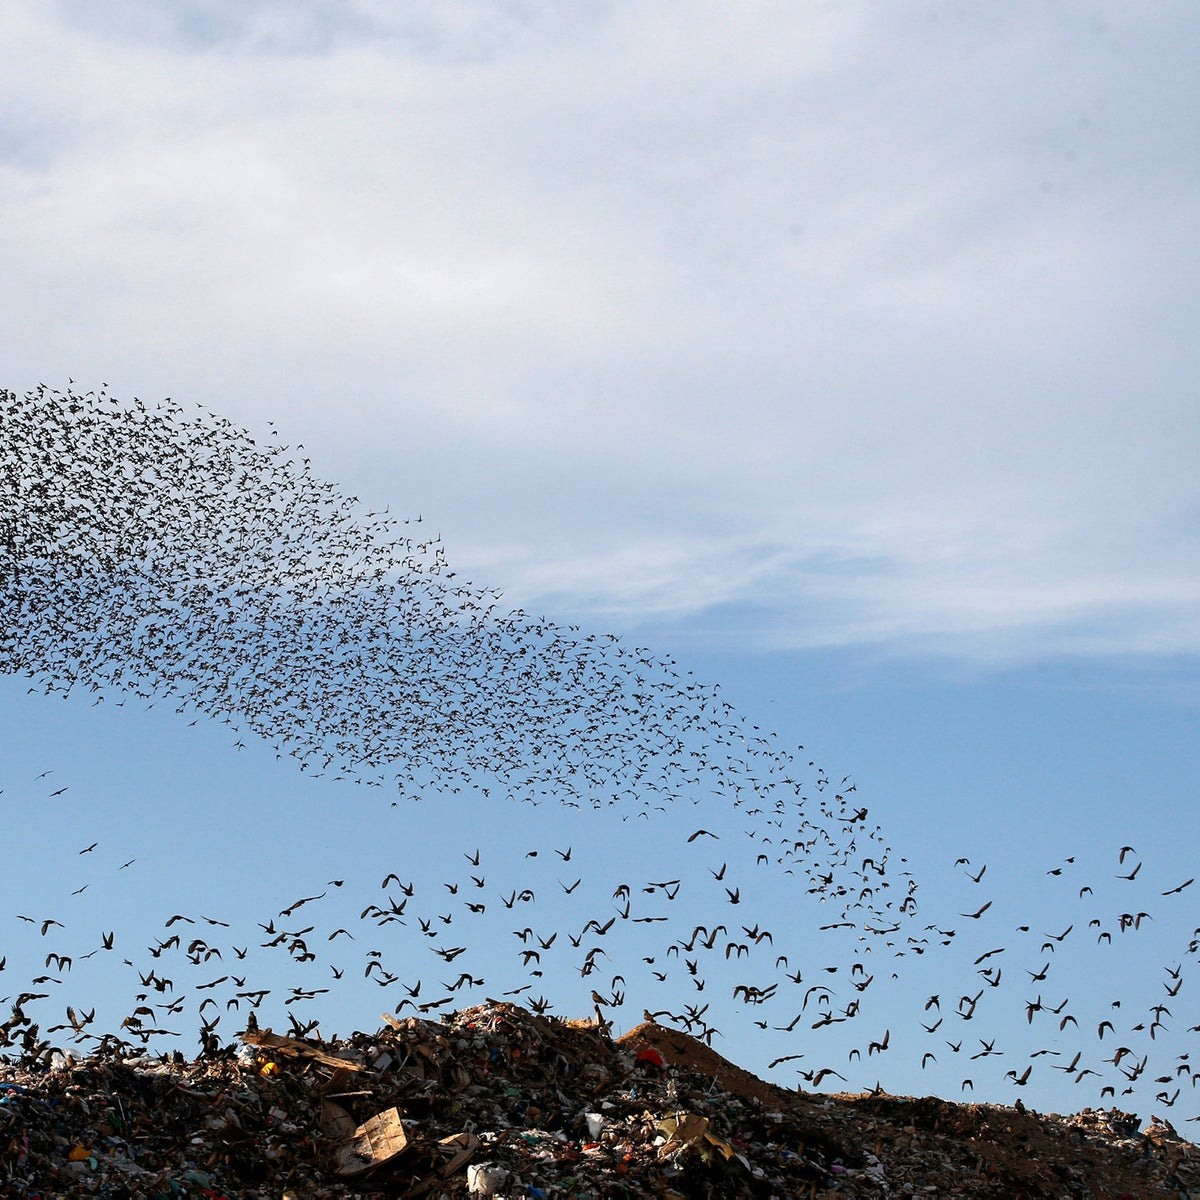 A murmuration of migrating starlings fly in a group above a waste facility near the city of Rahat, southern Israel January 1, 2019. Picture taken January 1, 2019.